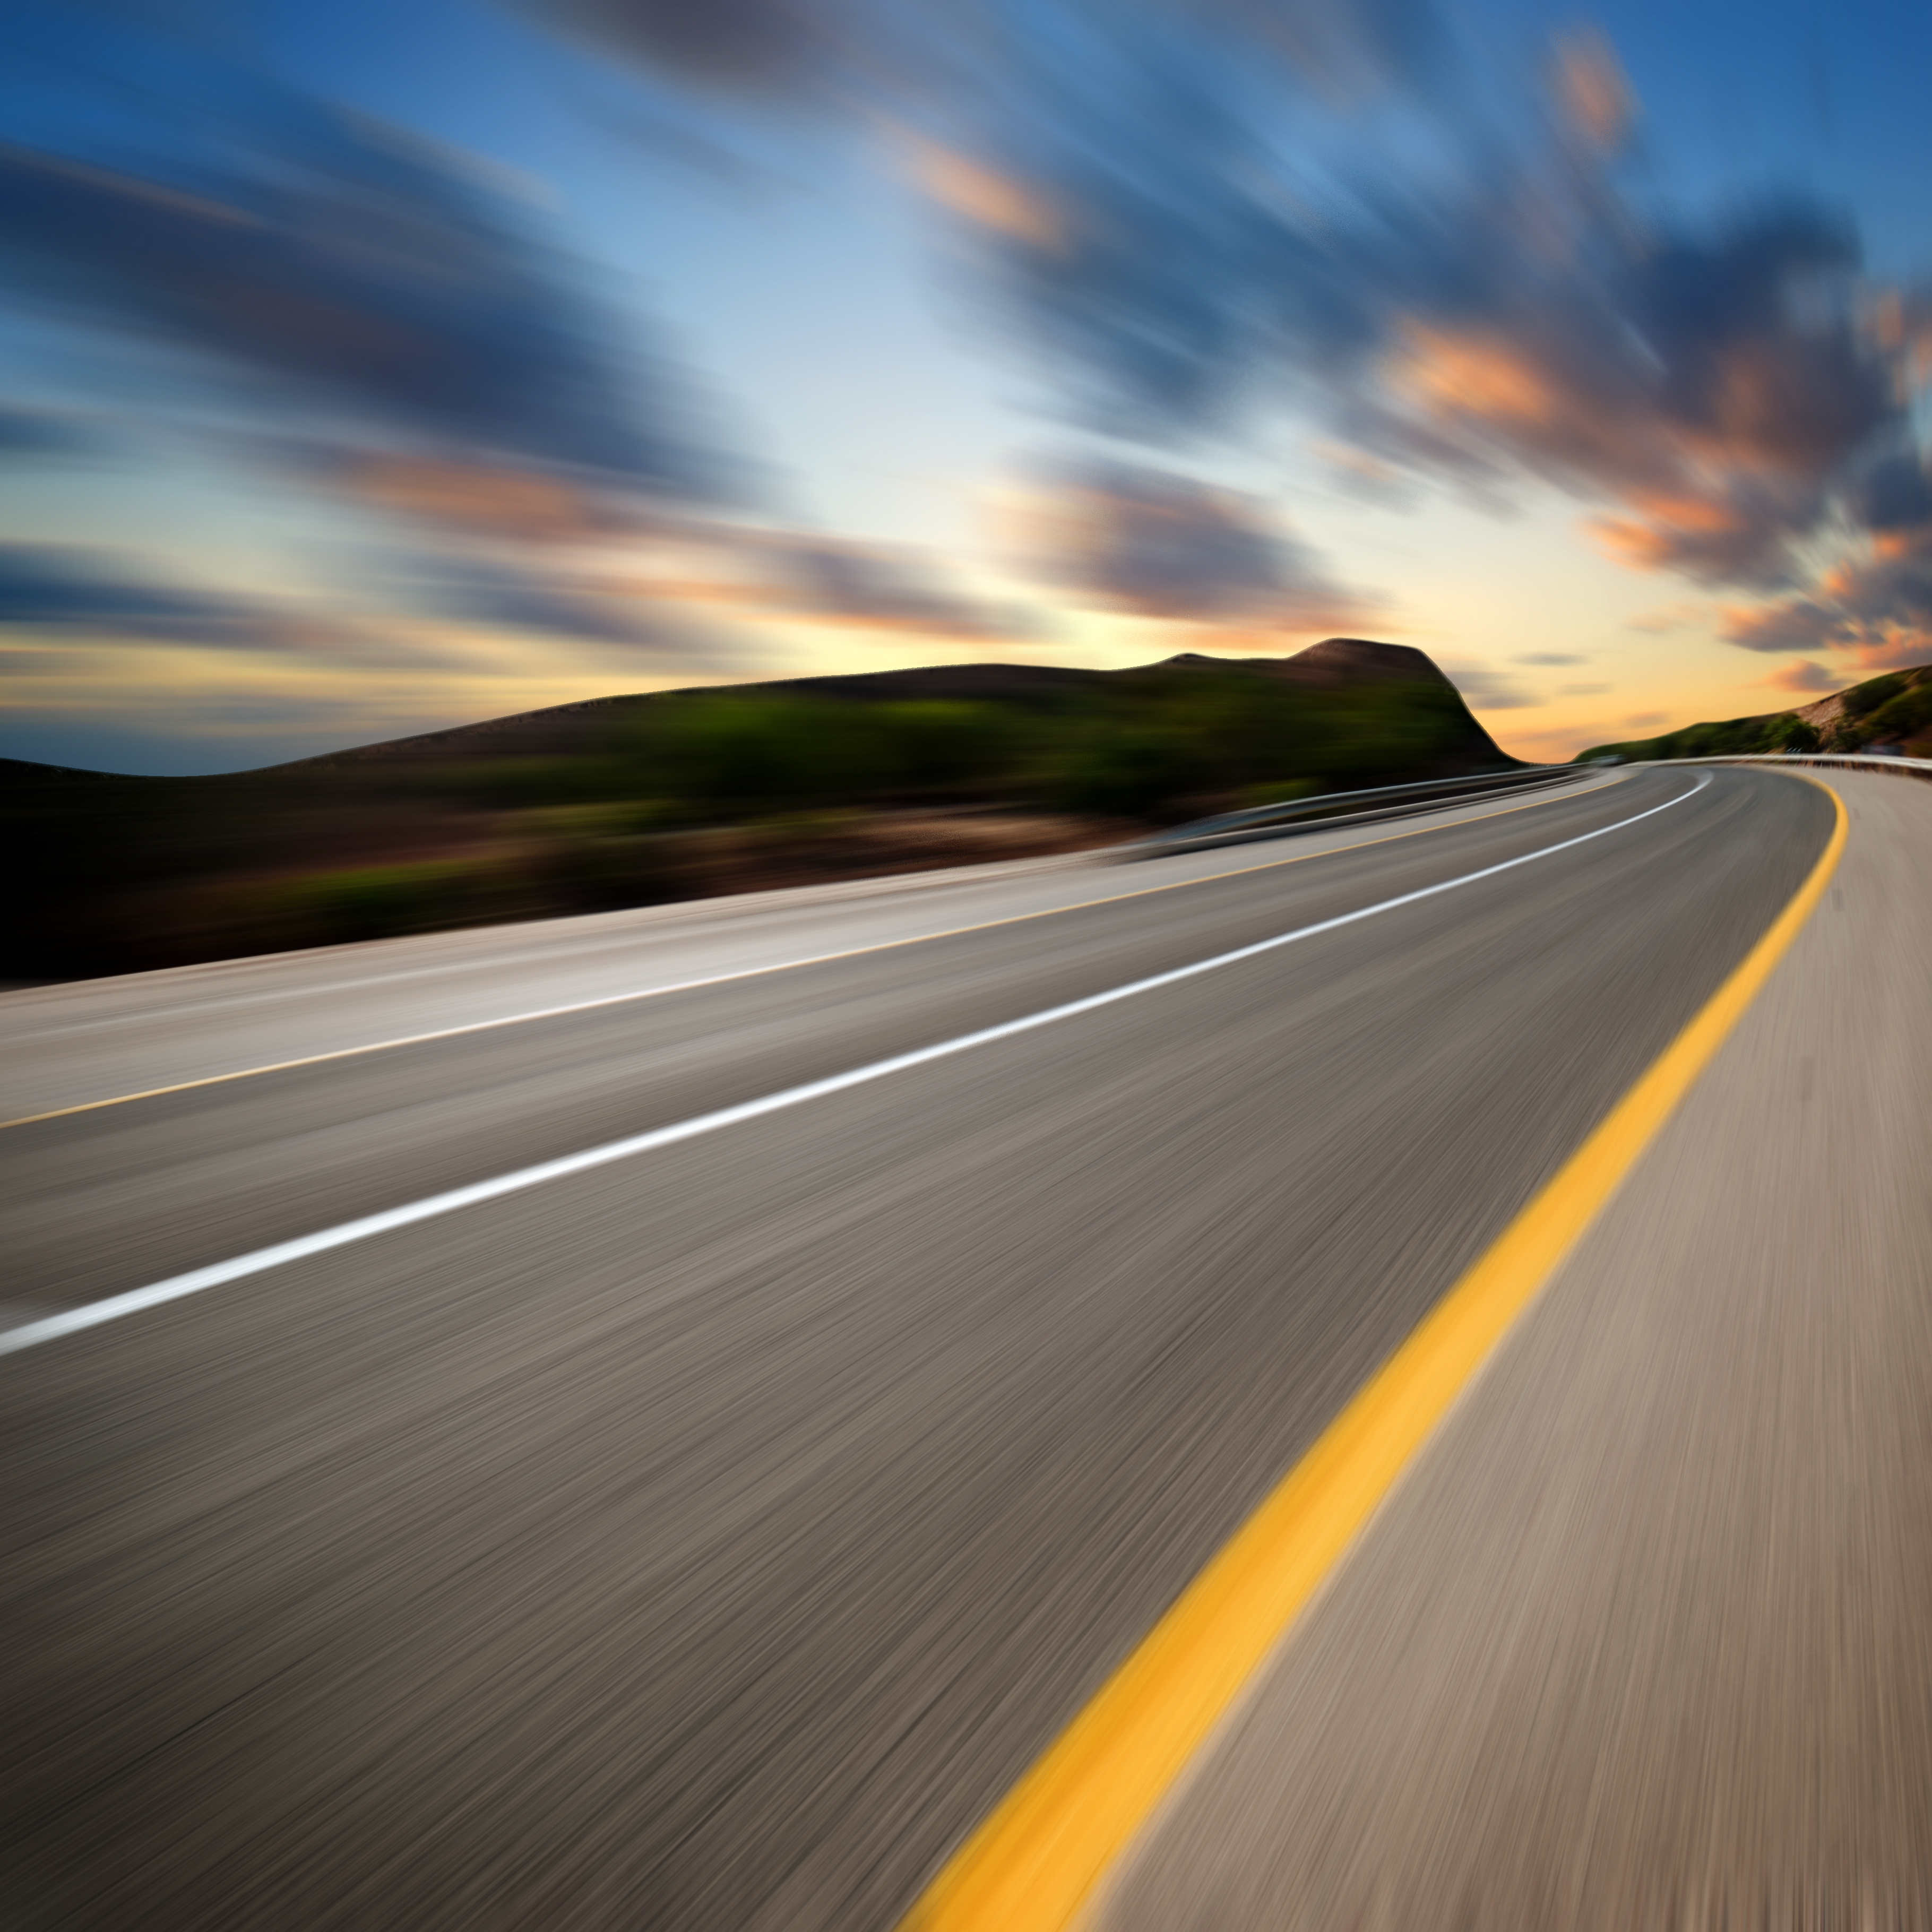 Blurry Road at High Speed